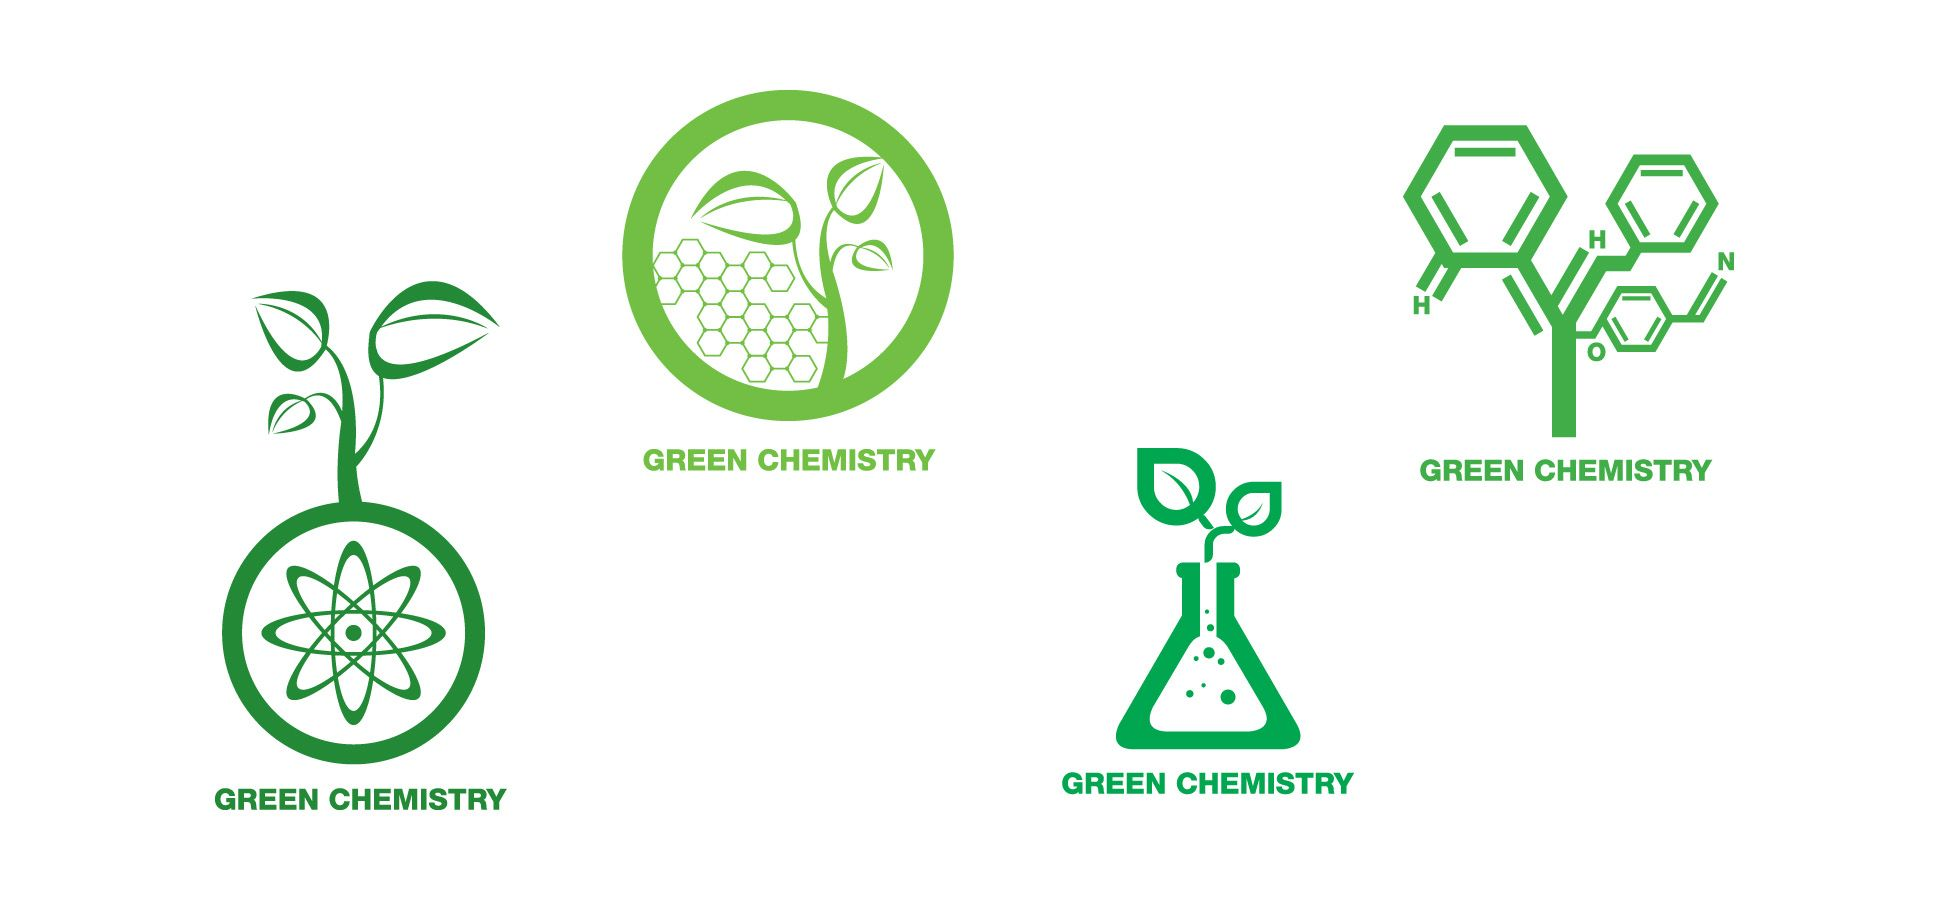 Https Kimiaundip09 Files Wordpress Com 2012 07 Green Chemistry Logo By Ameratsu Jpg Green Chemistry Green Branding Chemistry